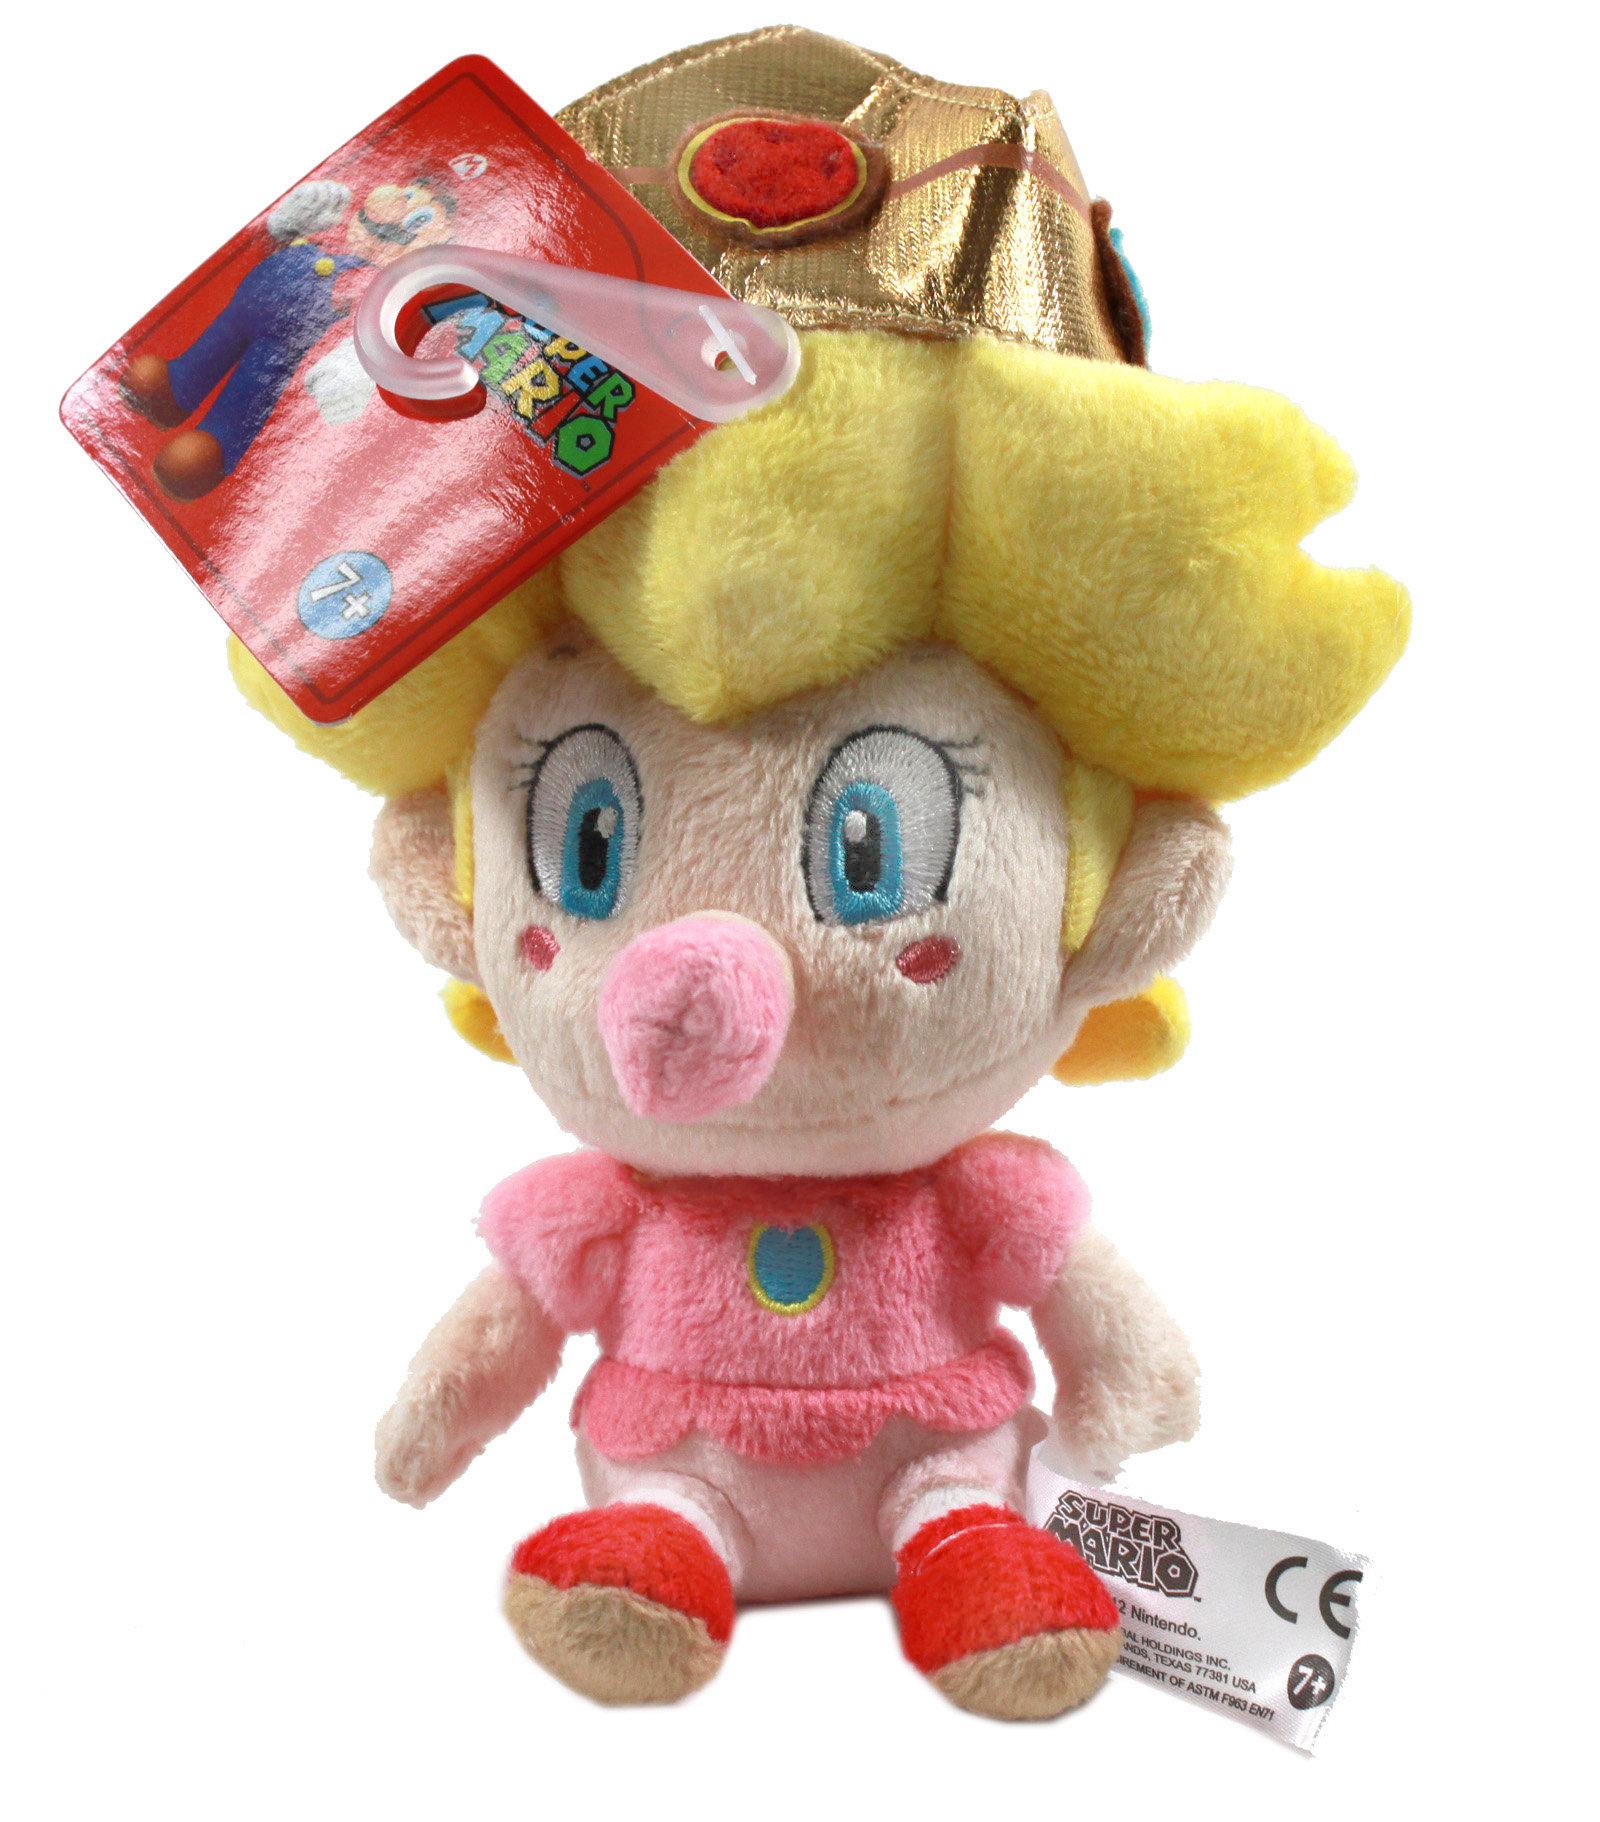 Real Little Buddy 1249 Super Mario 5 Baby Peach Plush Toy Doll